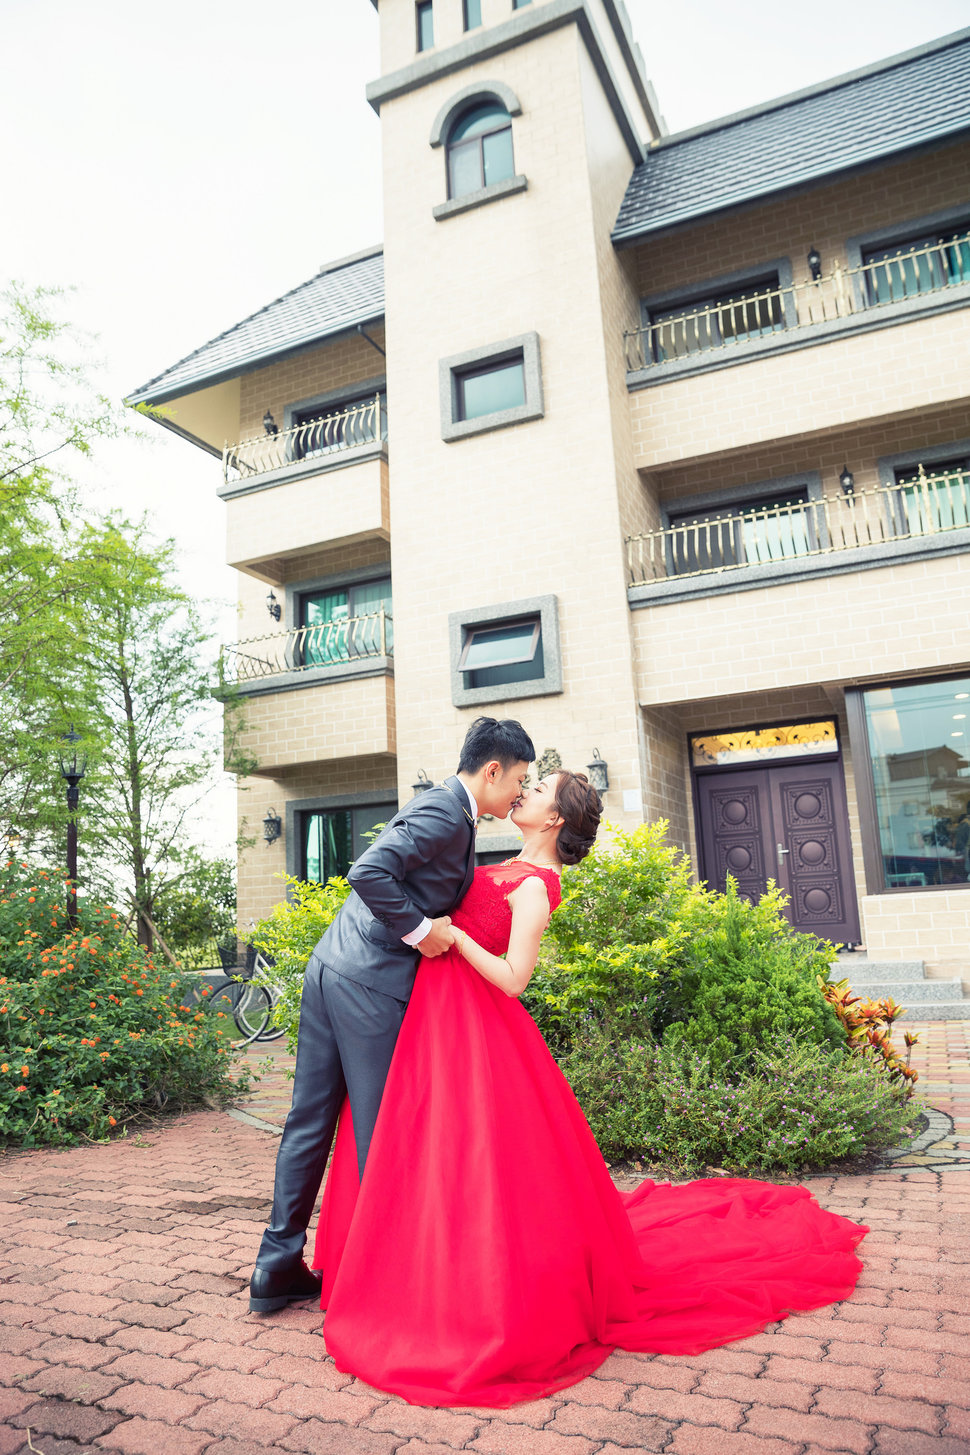 22 - Wei Photography - 結婚吧